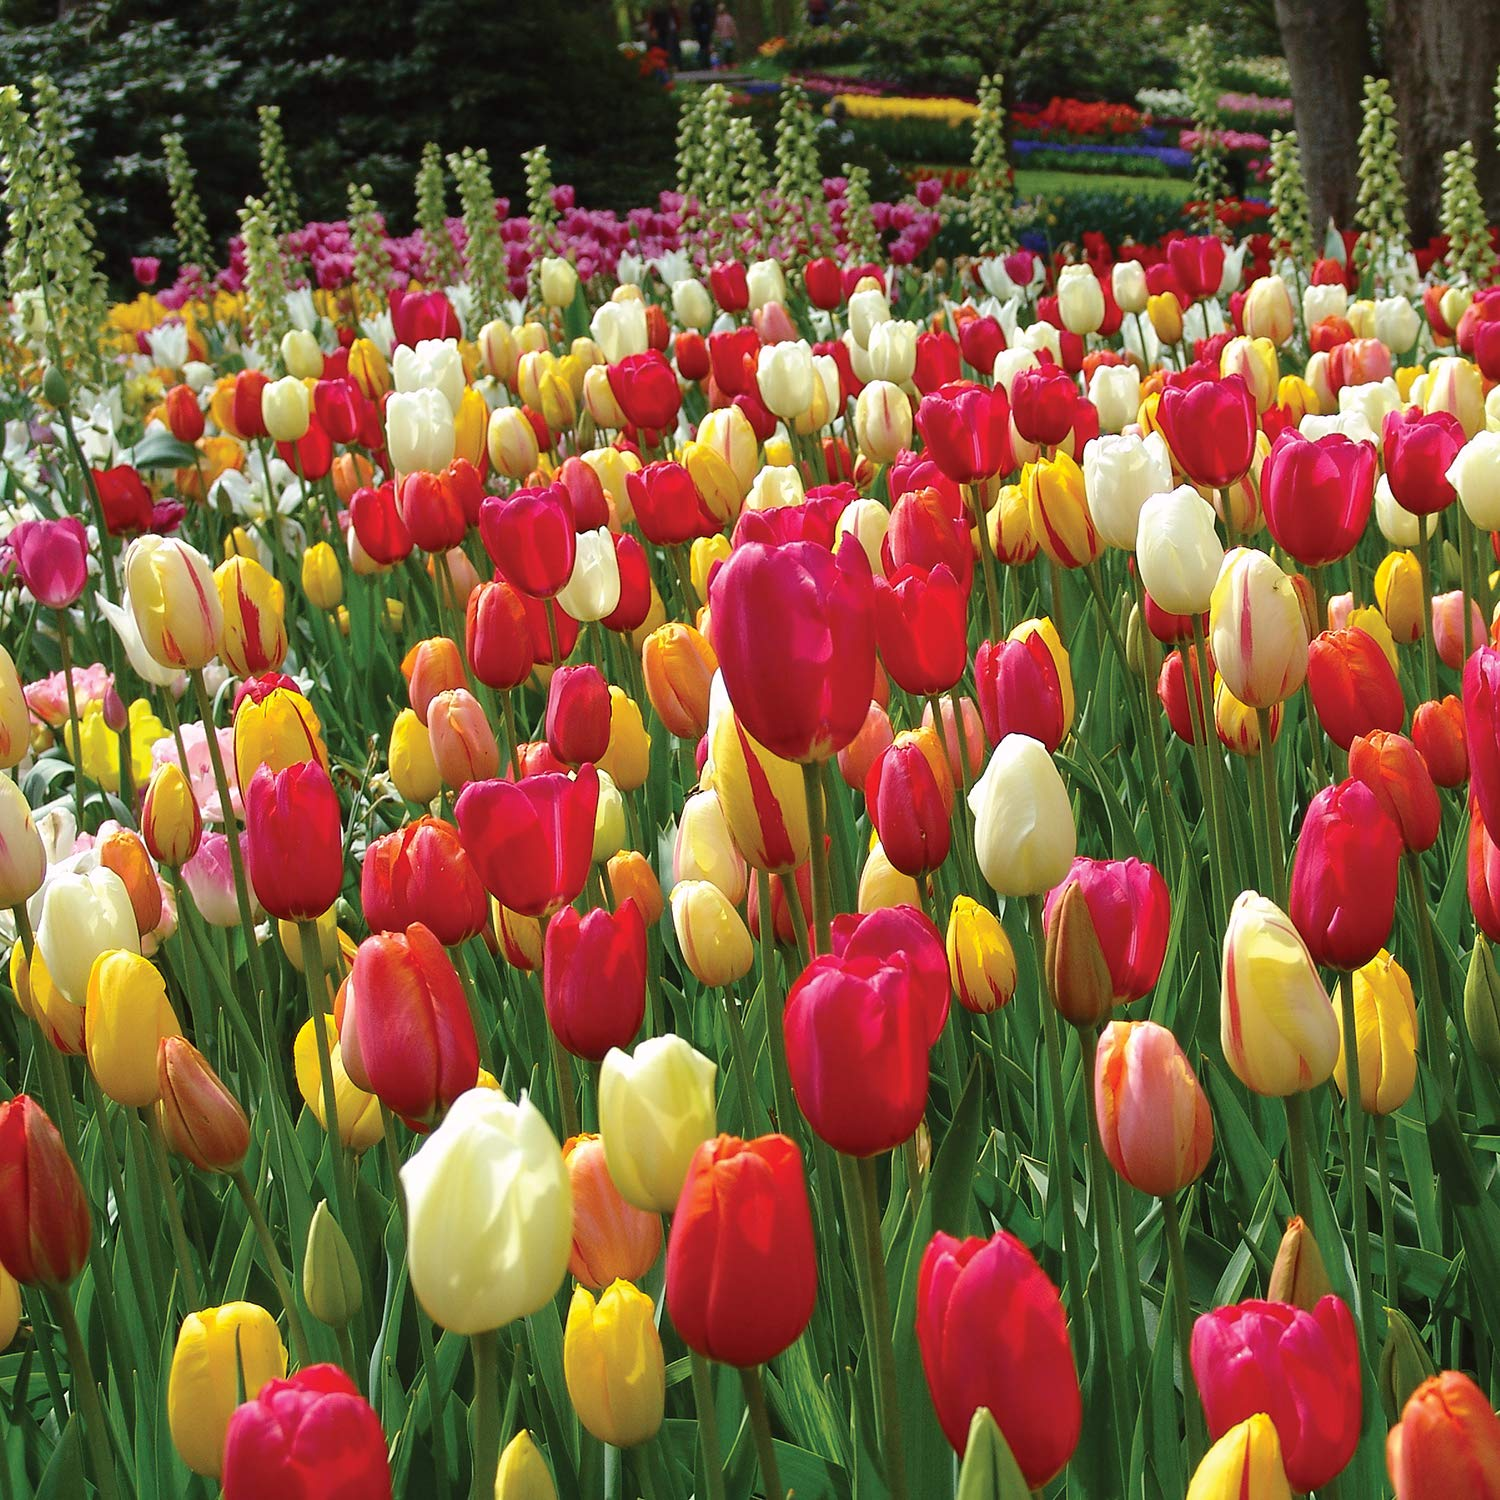 Burpee's Single Late Tulip Mix - 10 Flower Bulbs | Multiple Colors | 12 - 14cm Diameter